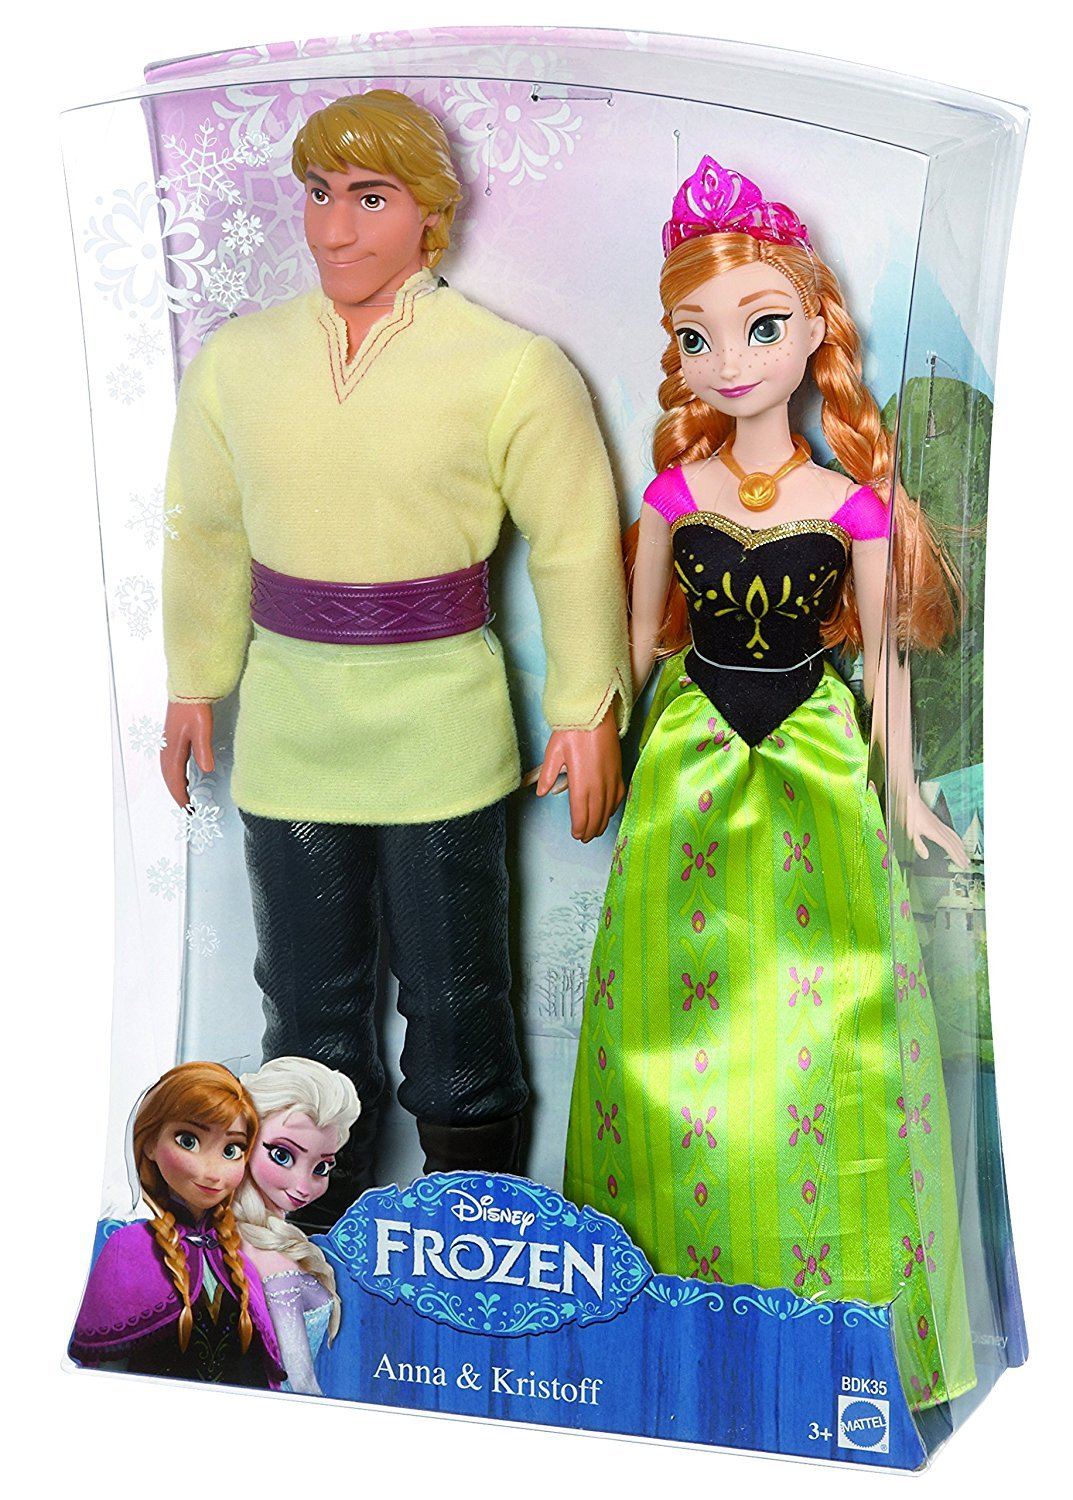 Disney Frozen Anna and Kristoff Doll, 2-Pack - $34.99